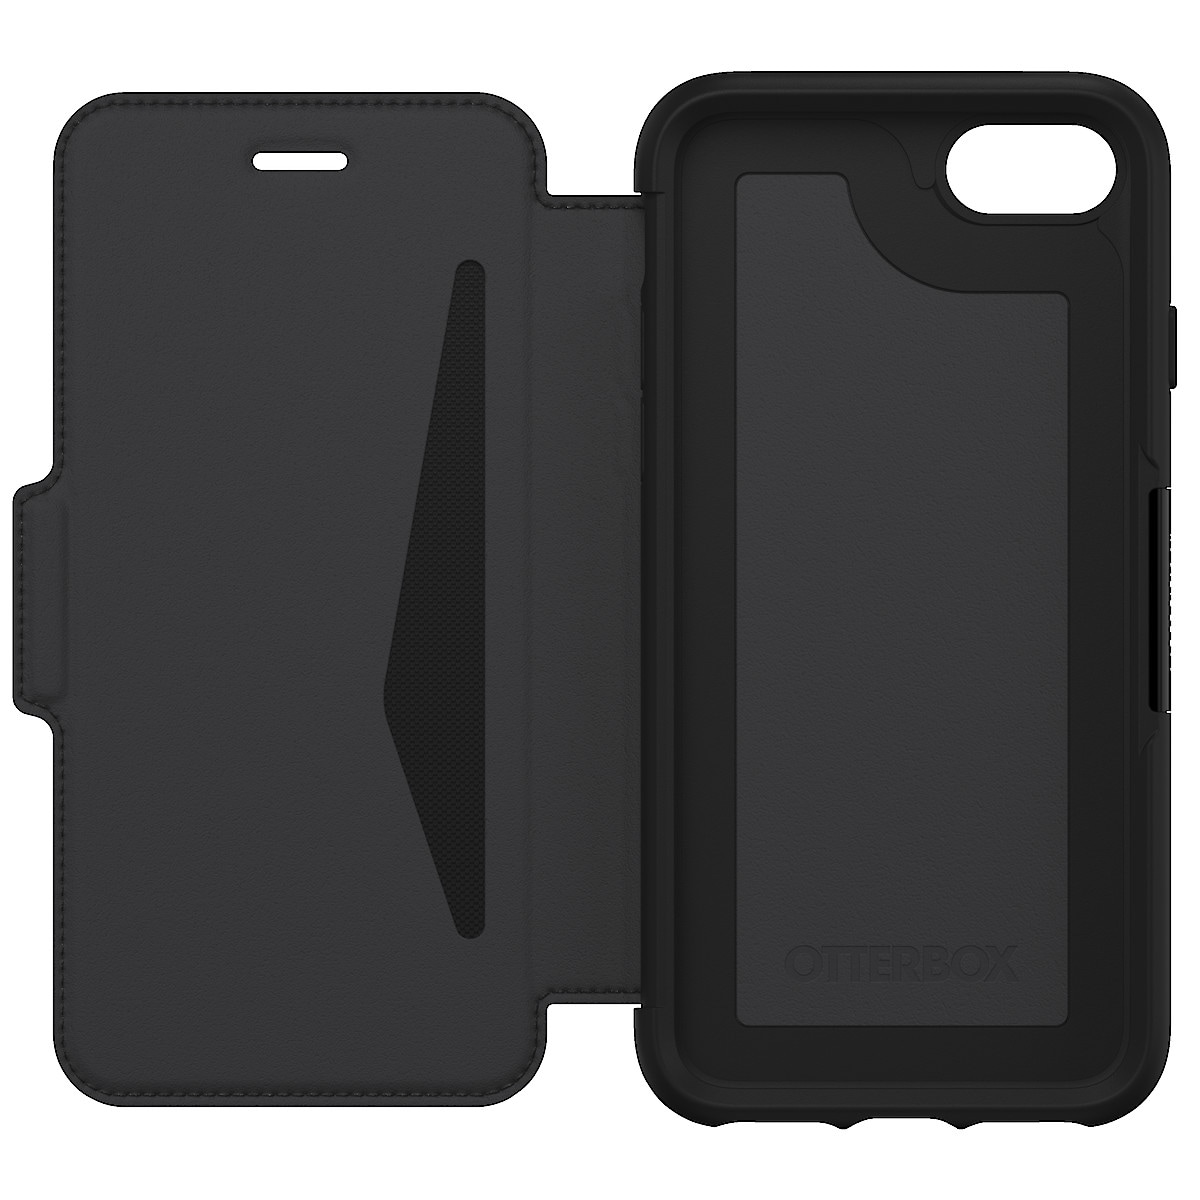 Otterbox Strada Folio lommebokfutteral til iPhone 6/6S/7/8/SE 2020